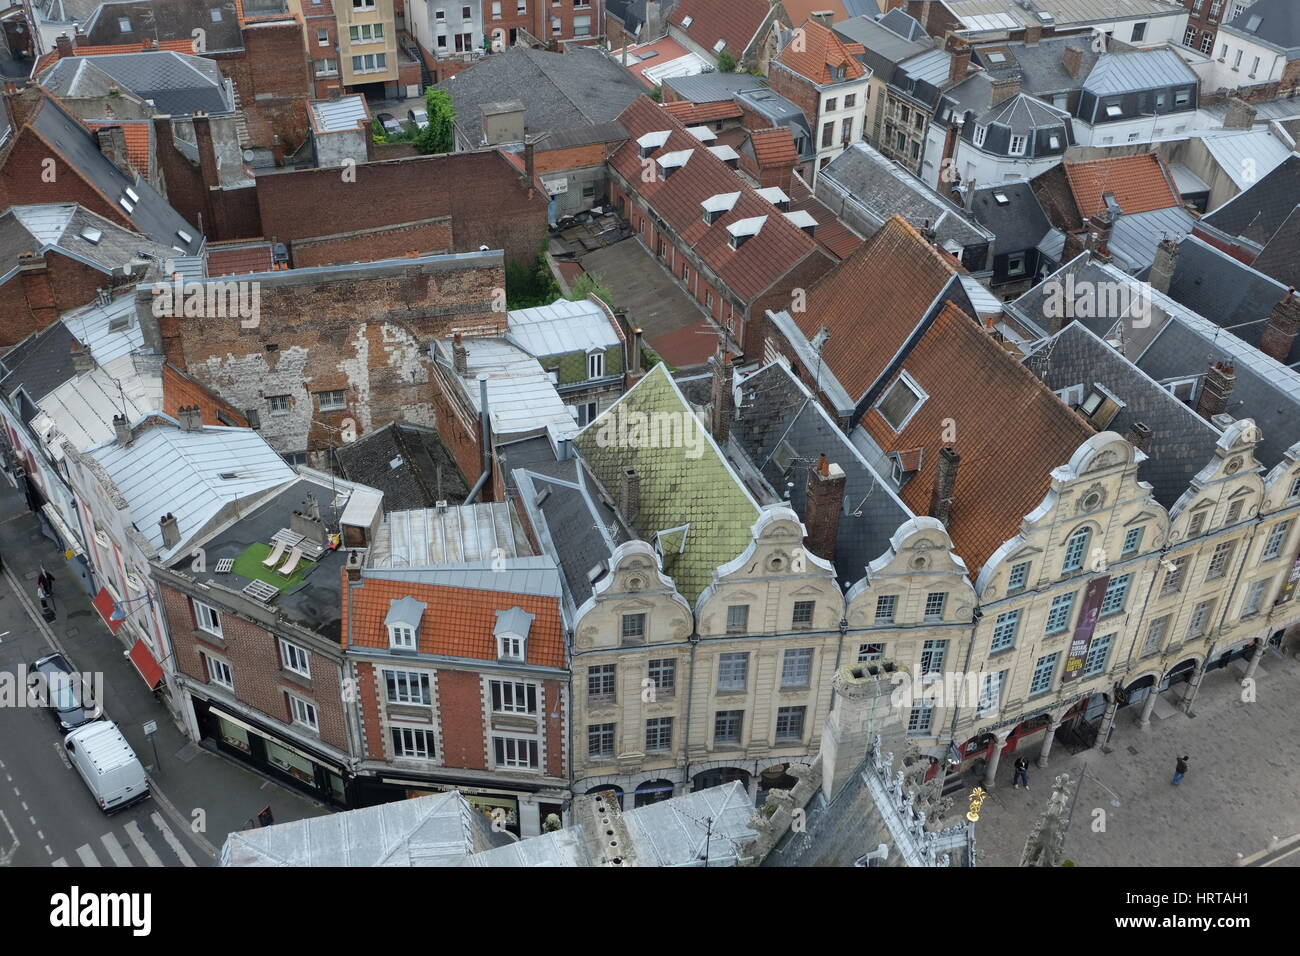 Arras from the Belfry Tower, France - Stock Image